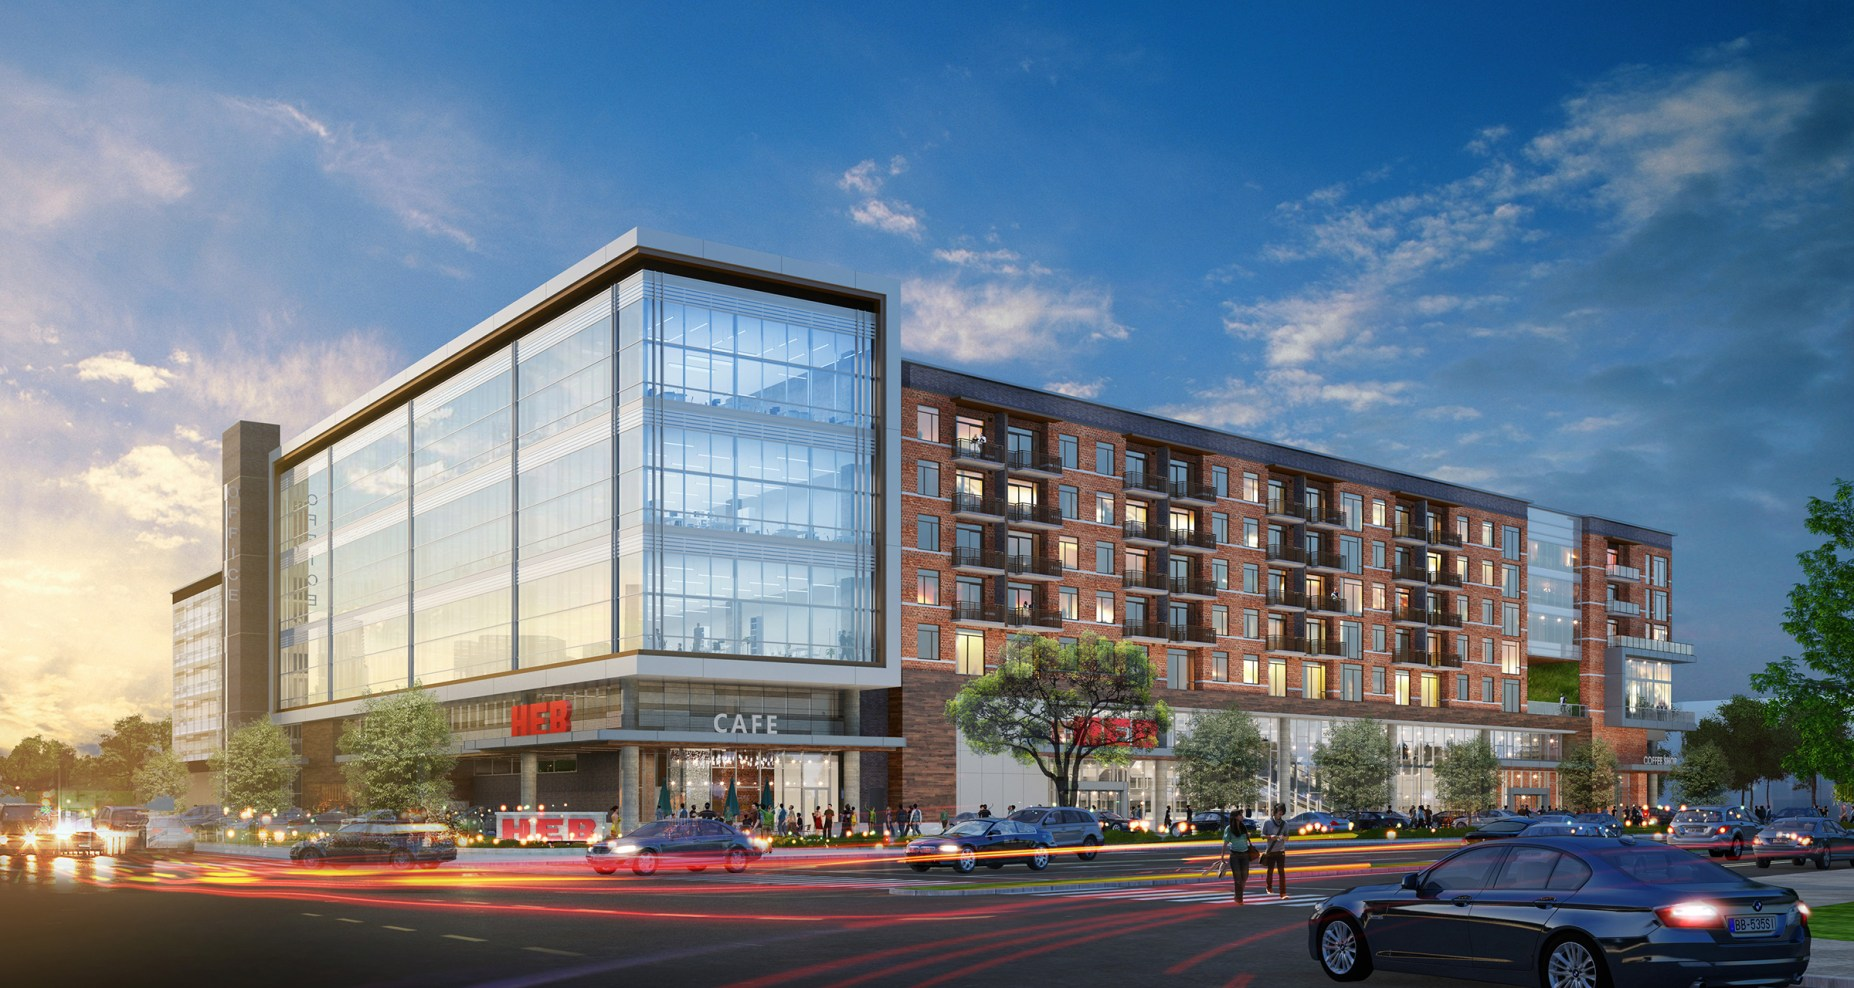 Retail Report: Occupancy is Still Strong Despite Construction Boom